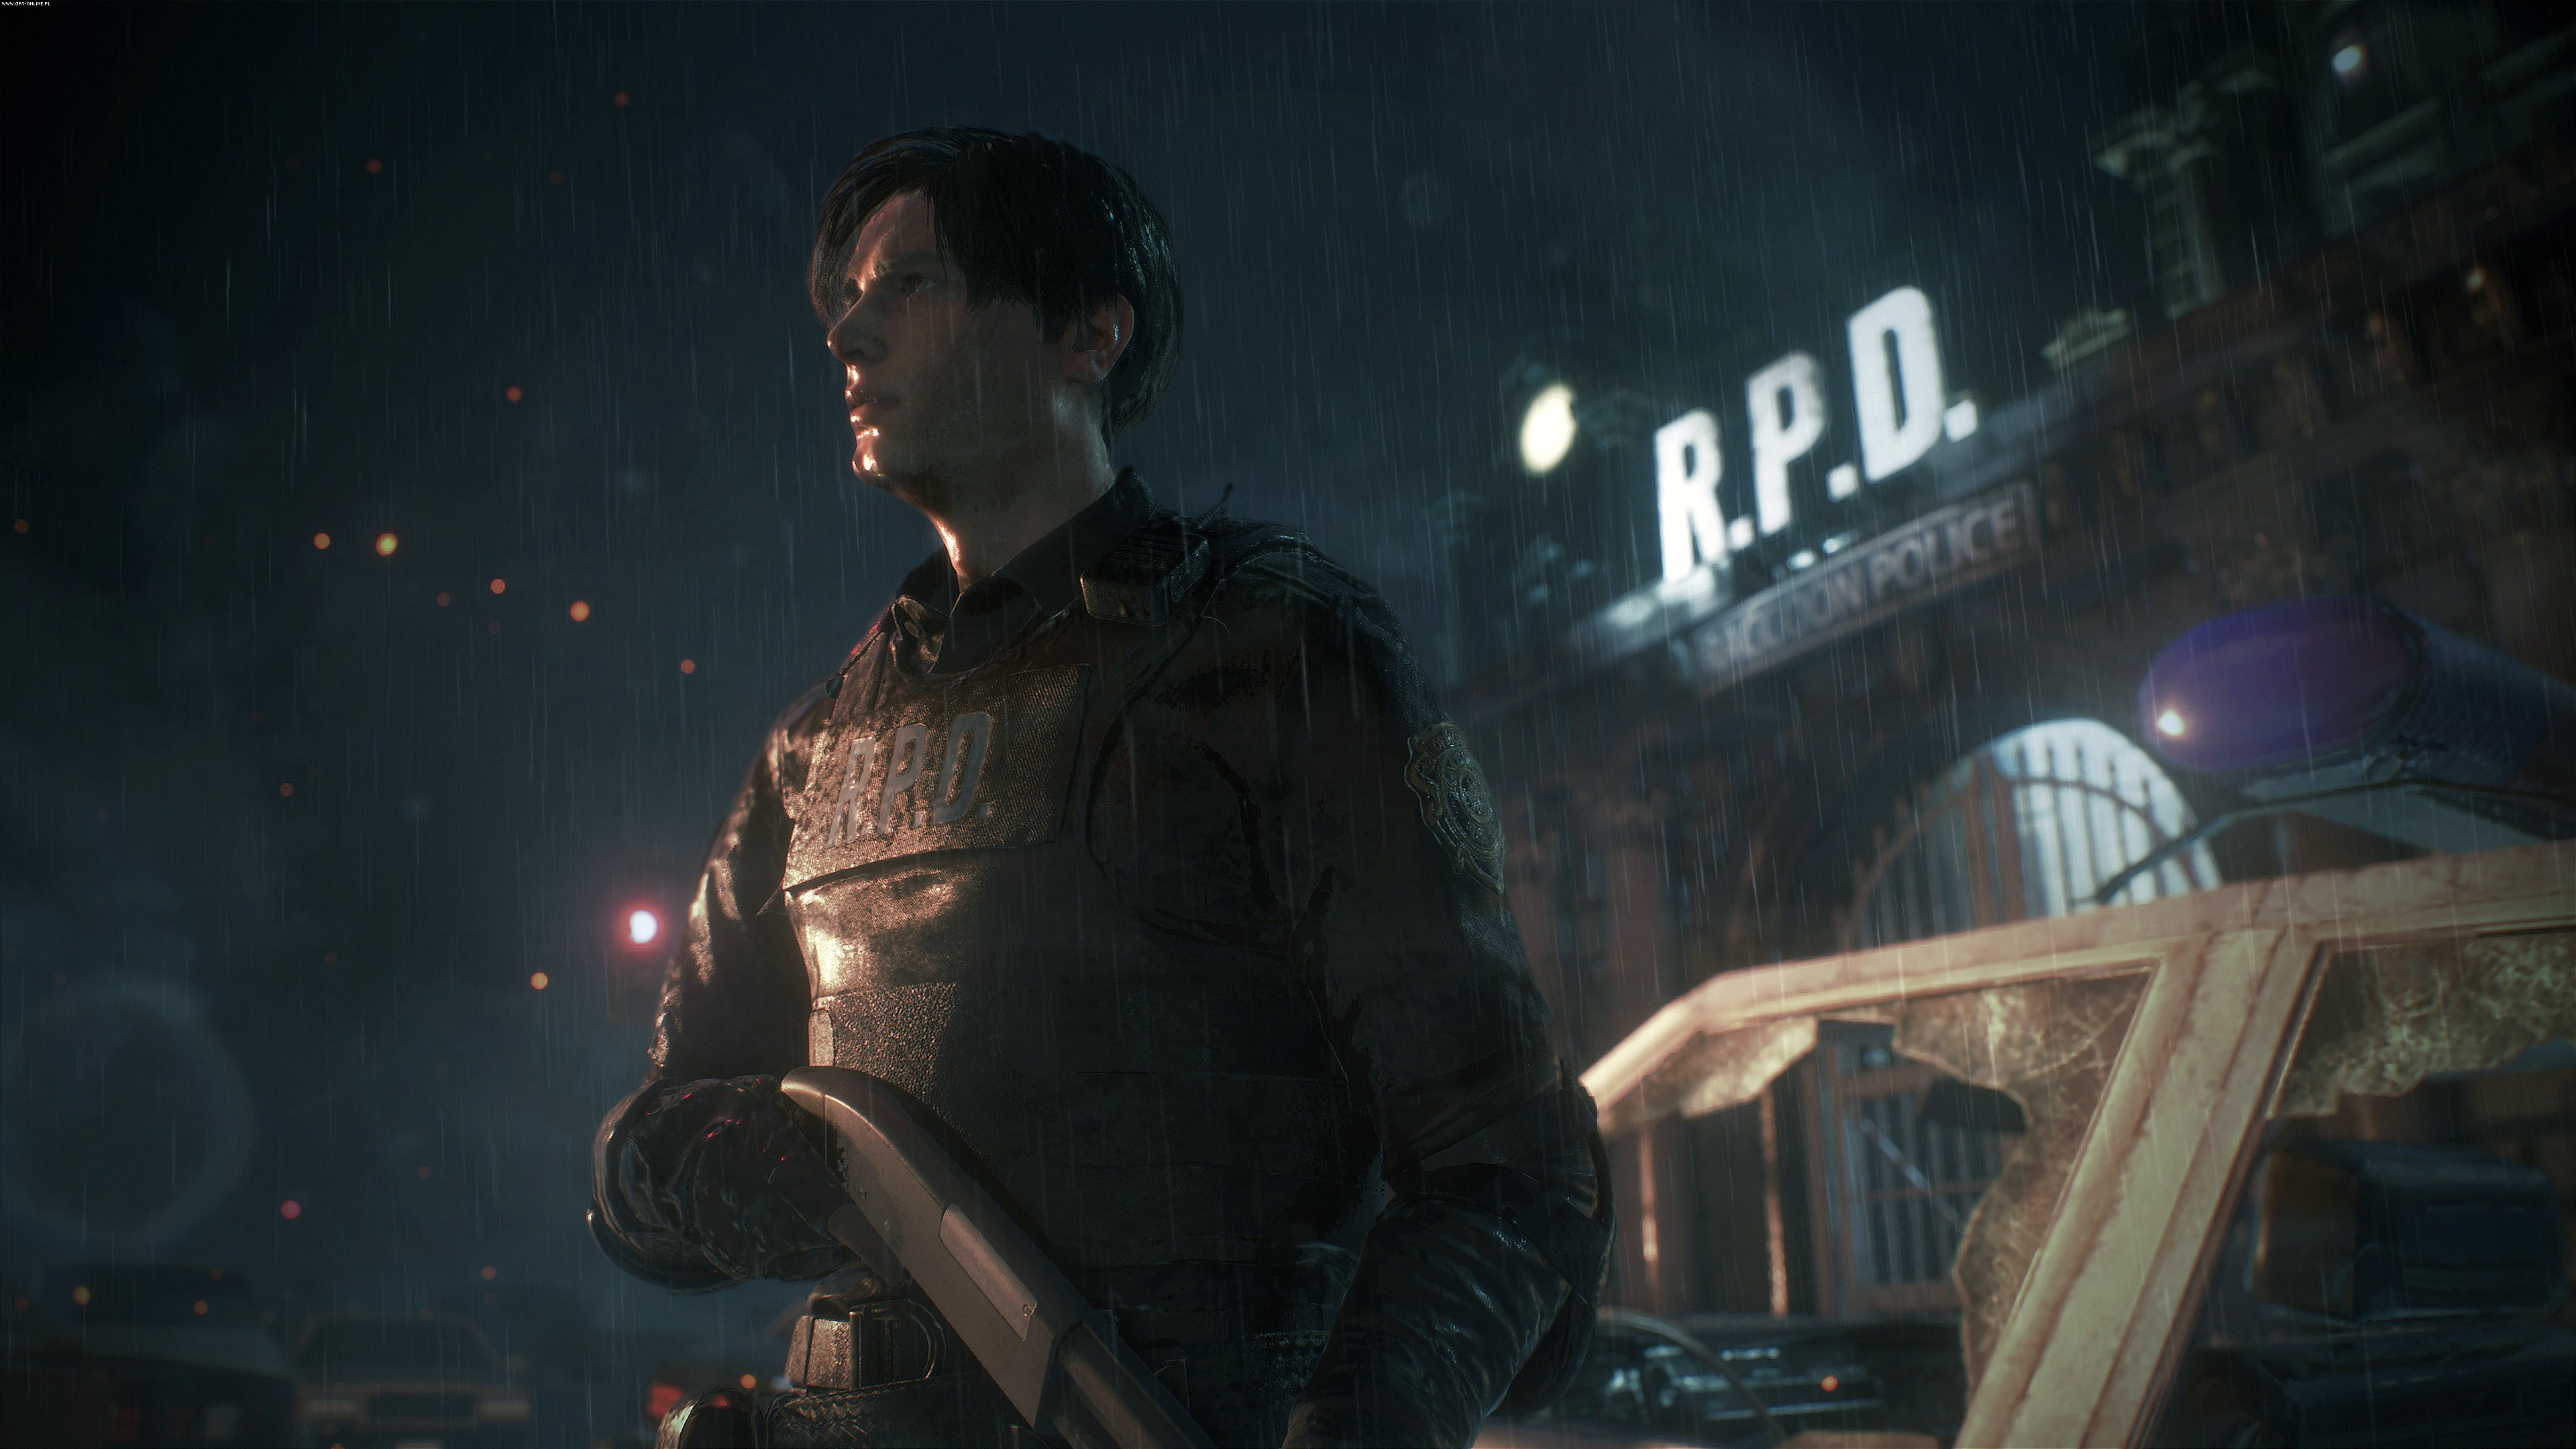 Resident Evil 2 PC, XONE, PS4, X360, PS3 Gry Screen 85/98, Capcom